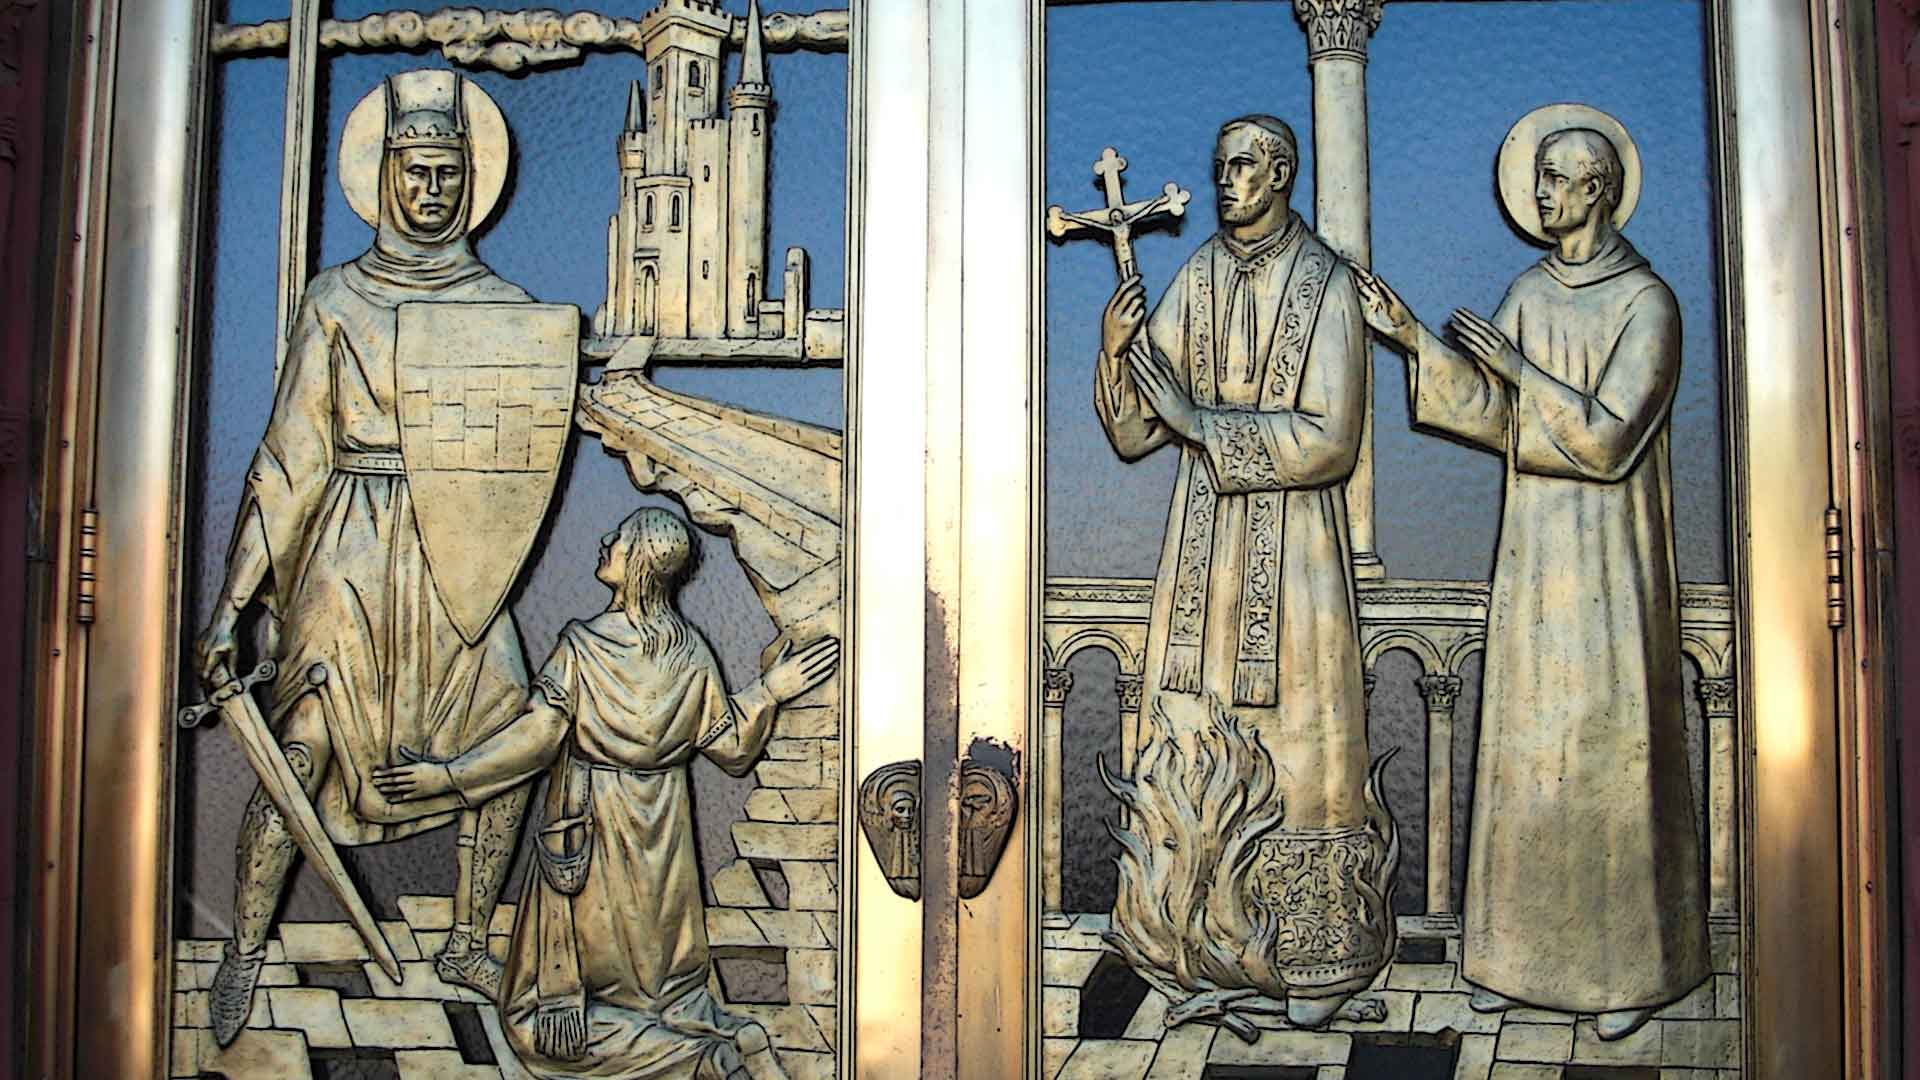 Detail Bronze Doors St John Gualbert Cathedral Johnstown PA